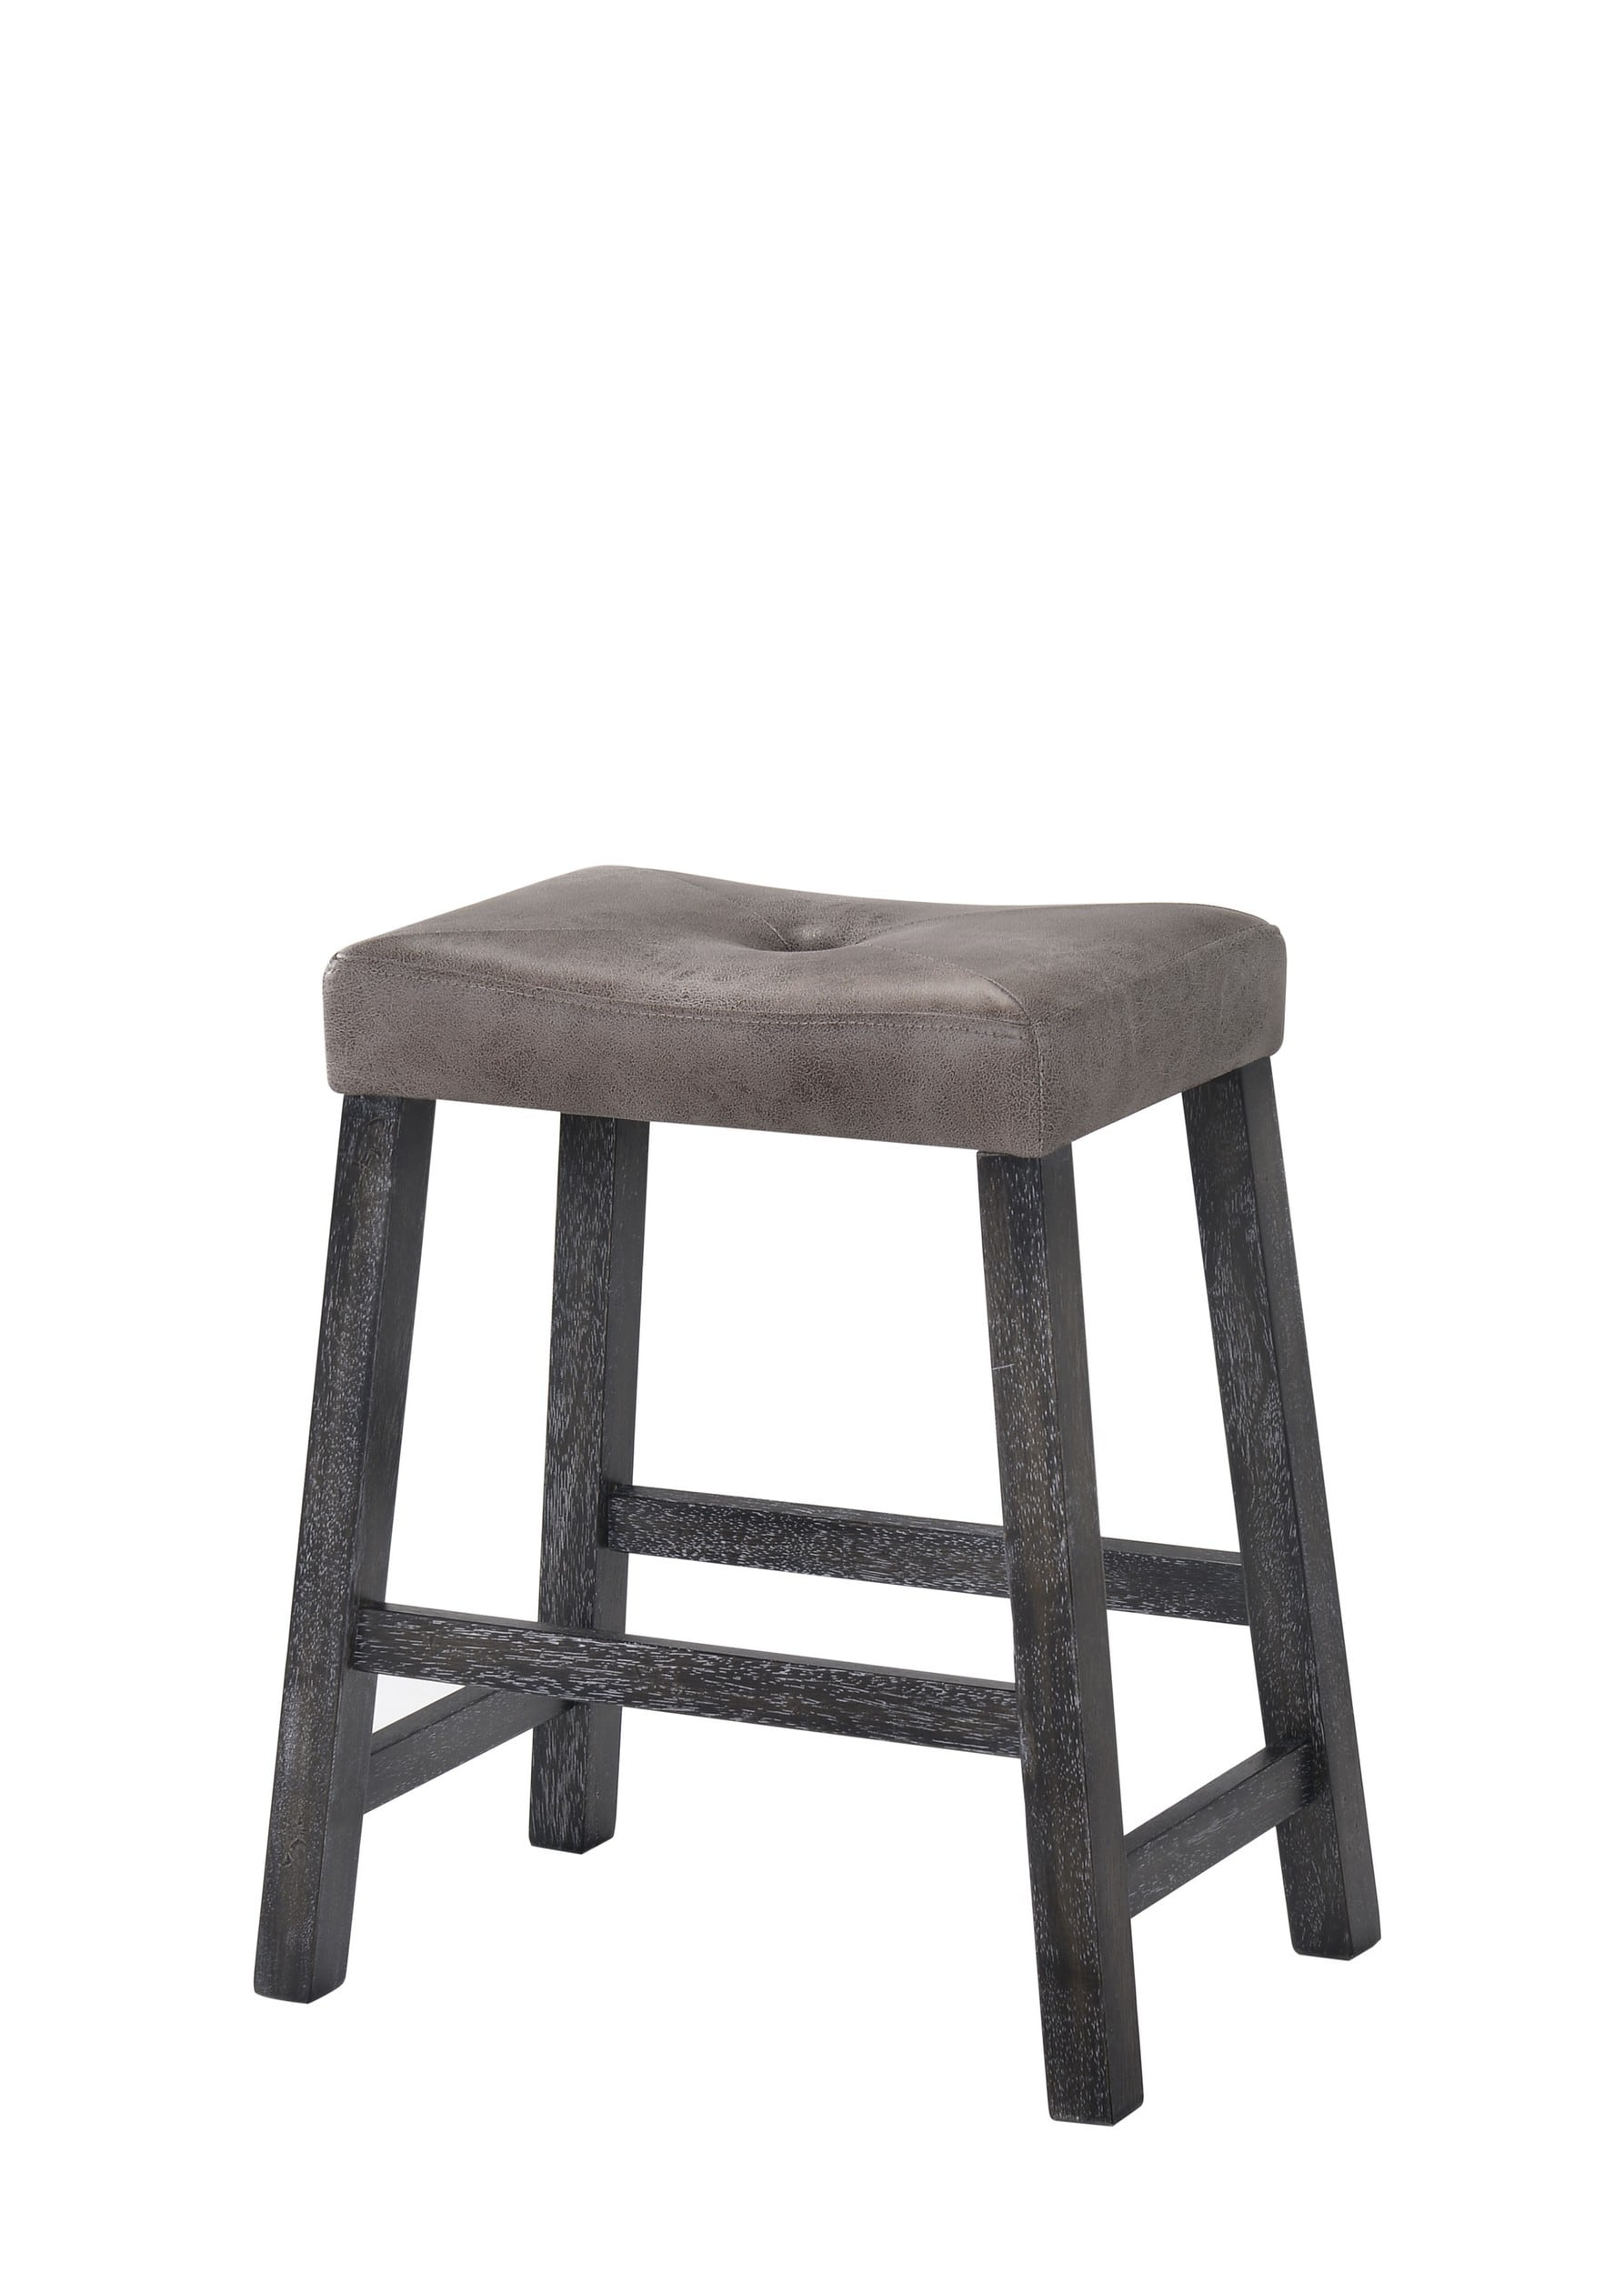 Lane Furniture Chatham Charcoal Brown Counter Stool Set Of 2